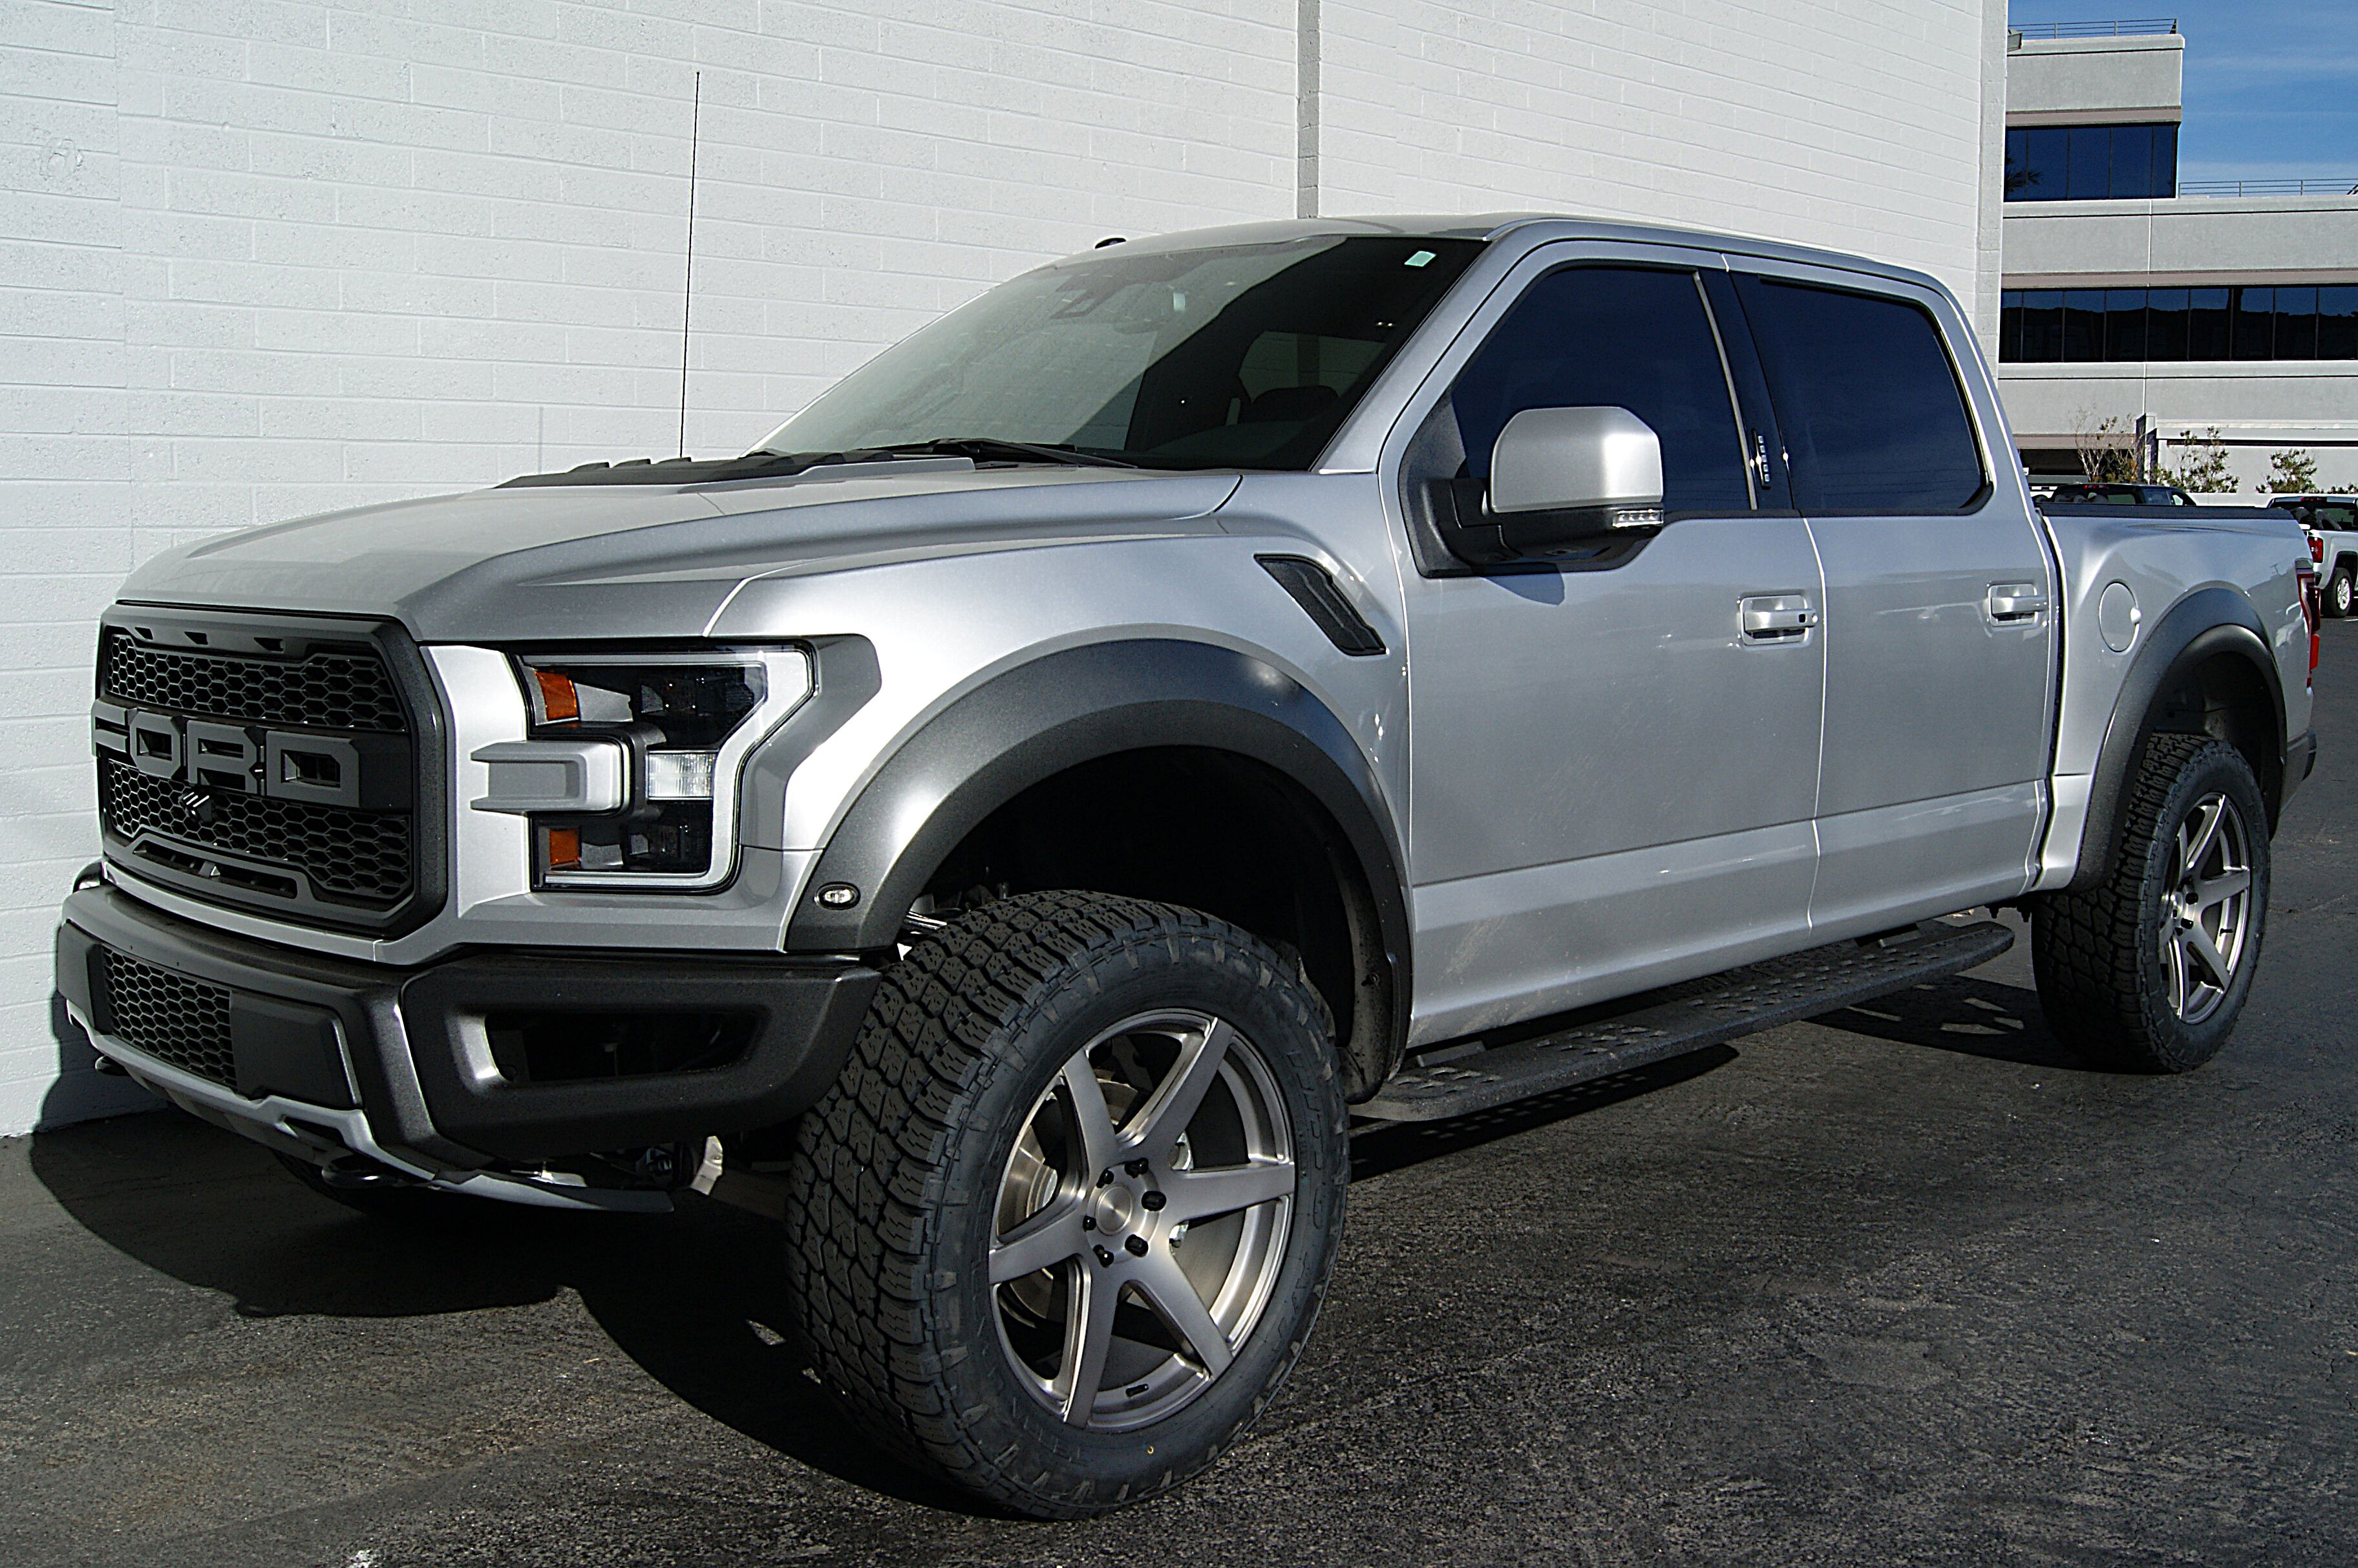 2017 Ford Raptor Silver • 22x9.5 DUB 6SIX Wheels in Brushed Double Dark Tint • 35x12.50R22 Nitto ...